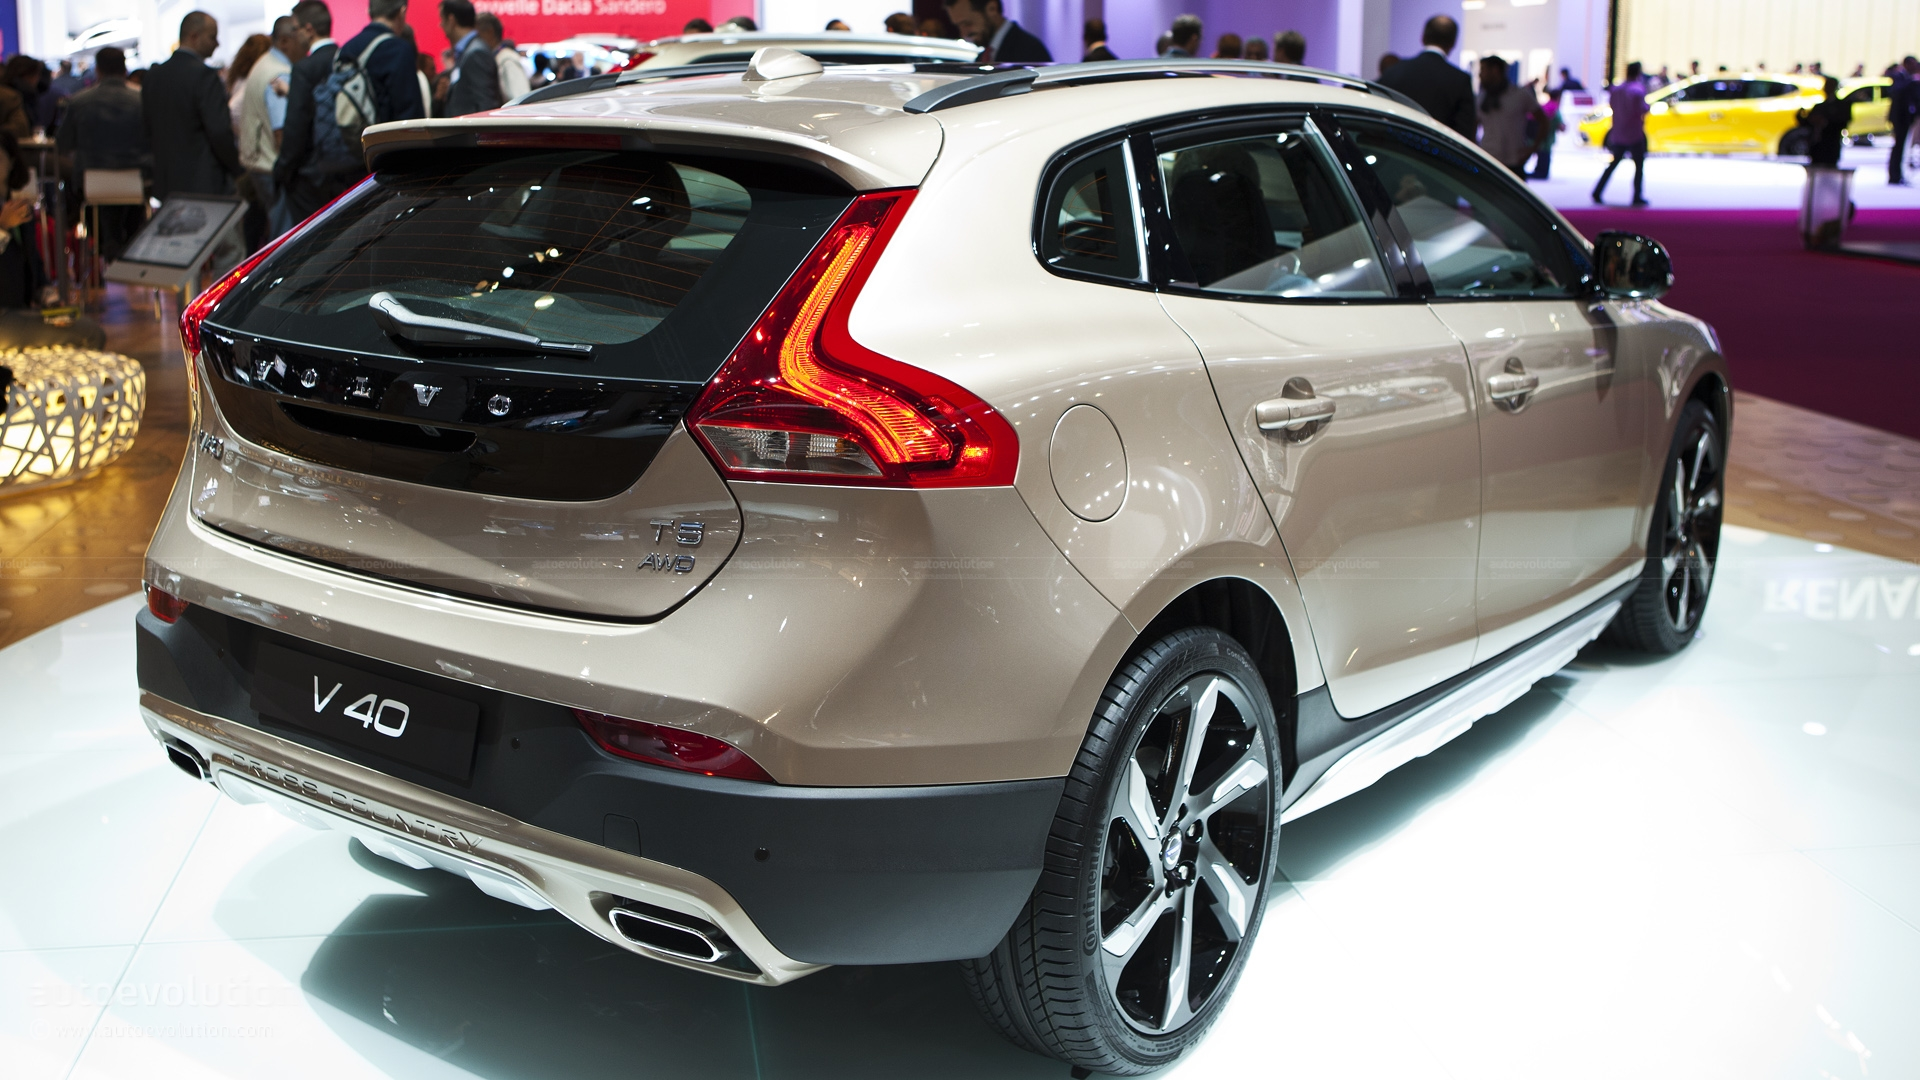 volvo v40 cross country 1 6 t4 180 hp powershift. Black Bedroom Furniture Sets. Home Design Ideas